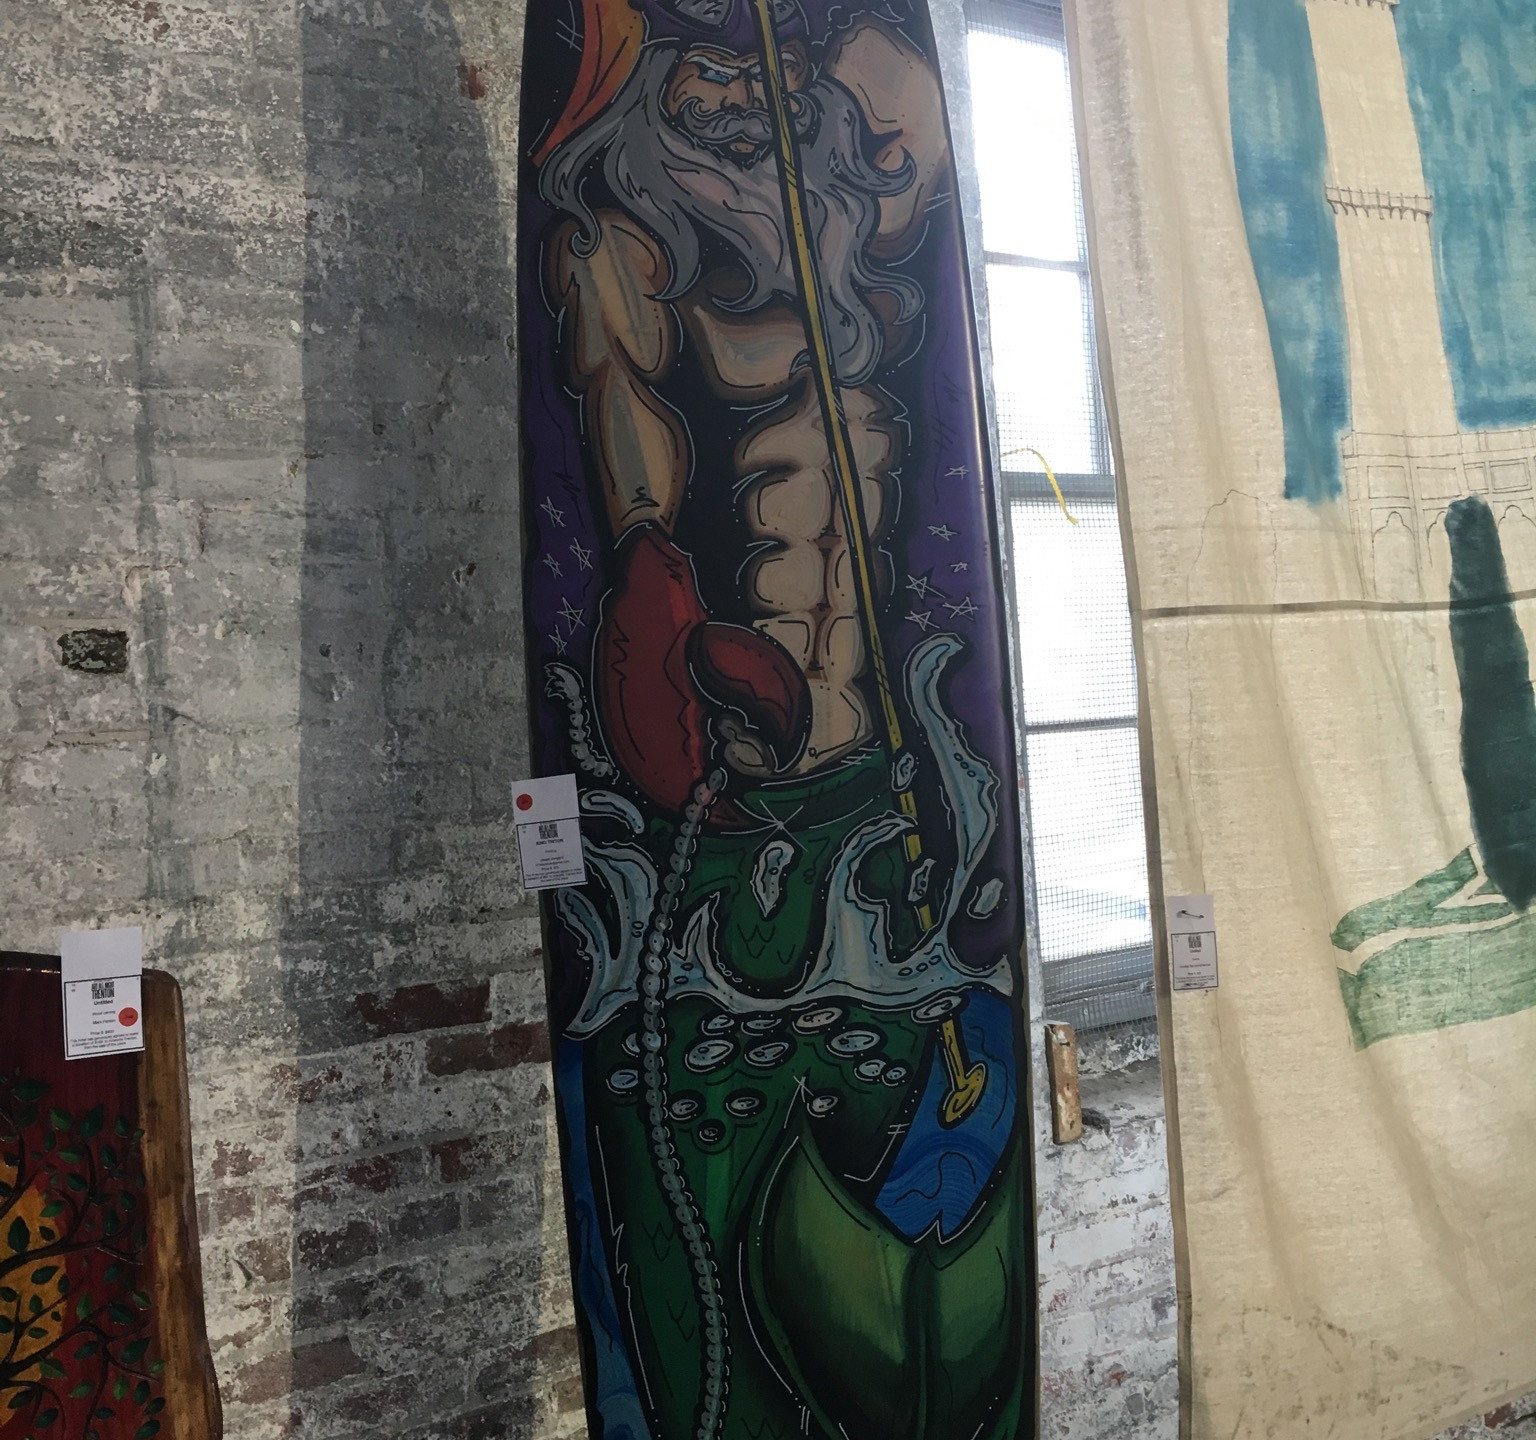 Art on a surfboard at Art All Night 2016